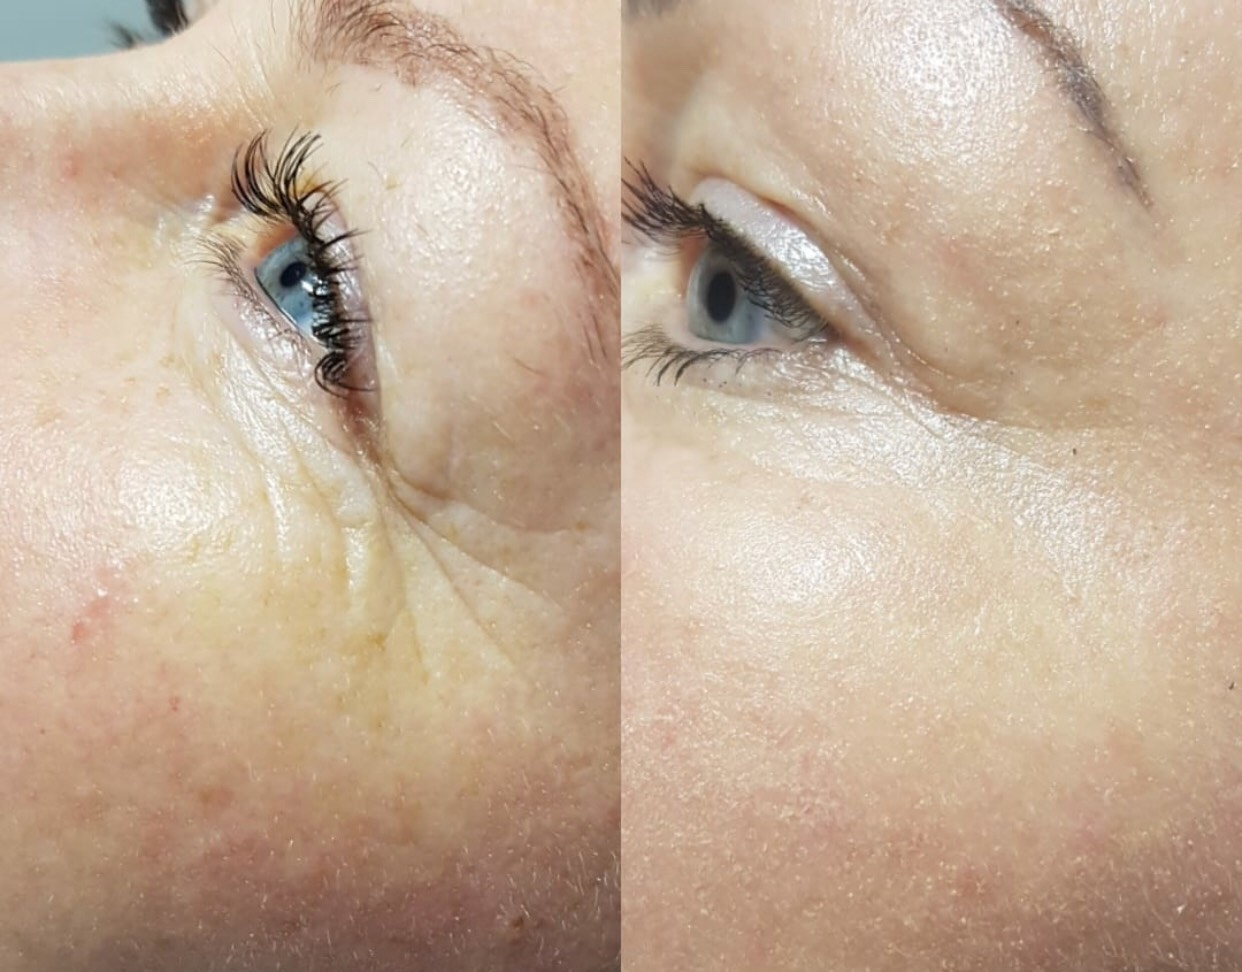 Eyebrow Tattoo Removal In San Jose | Non Laser Treatment